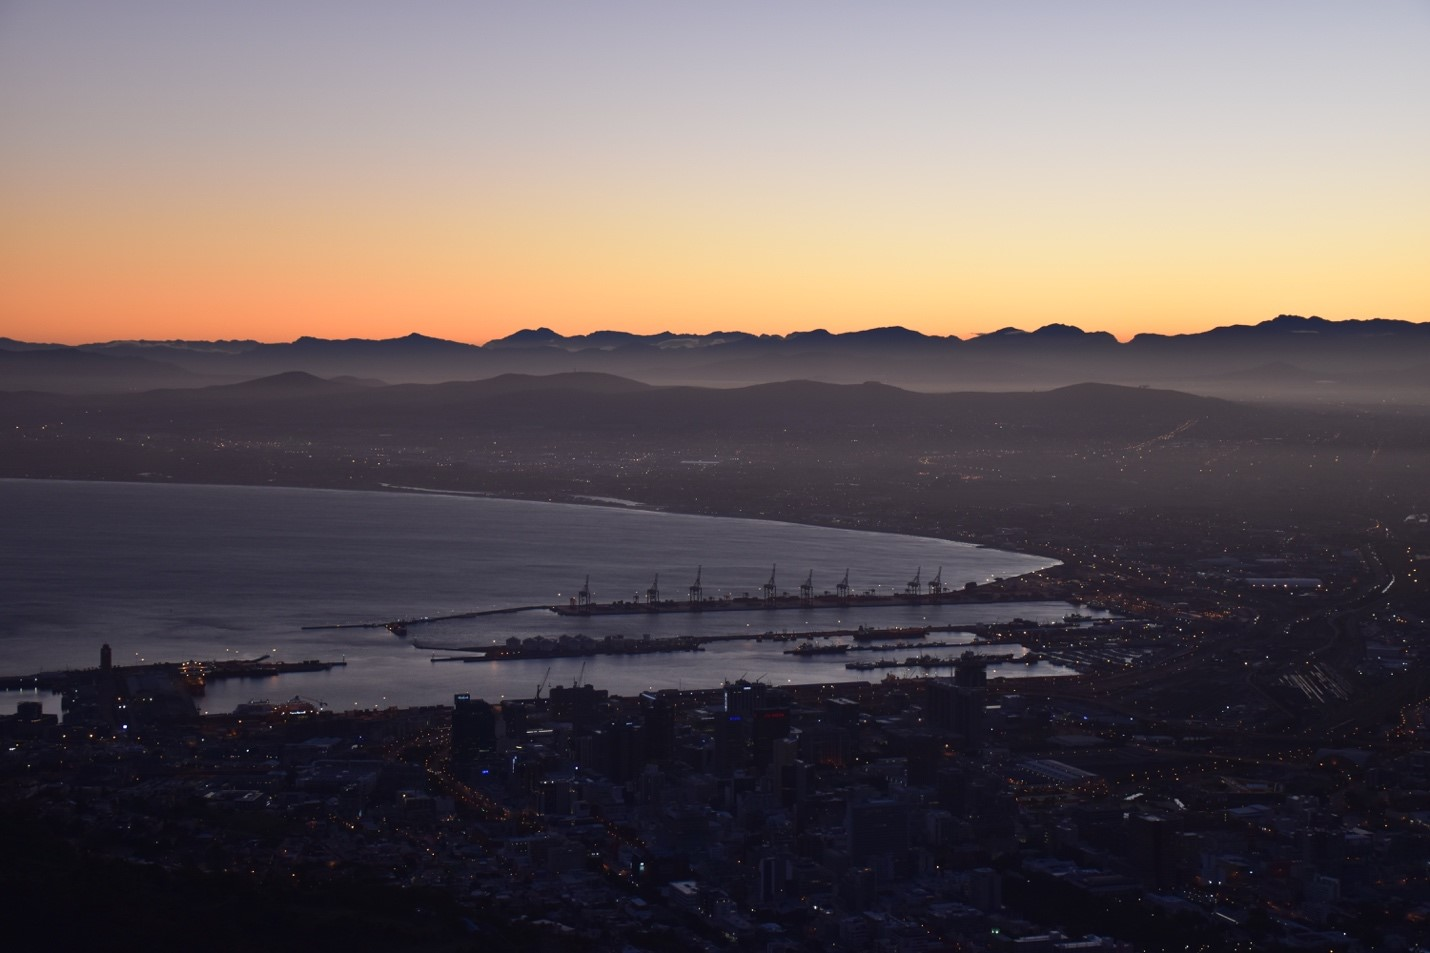 The Cape Town cityscape. Photo courtesy of Adam Yates.